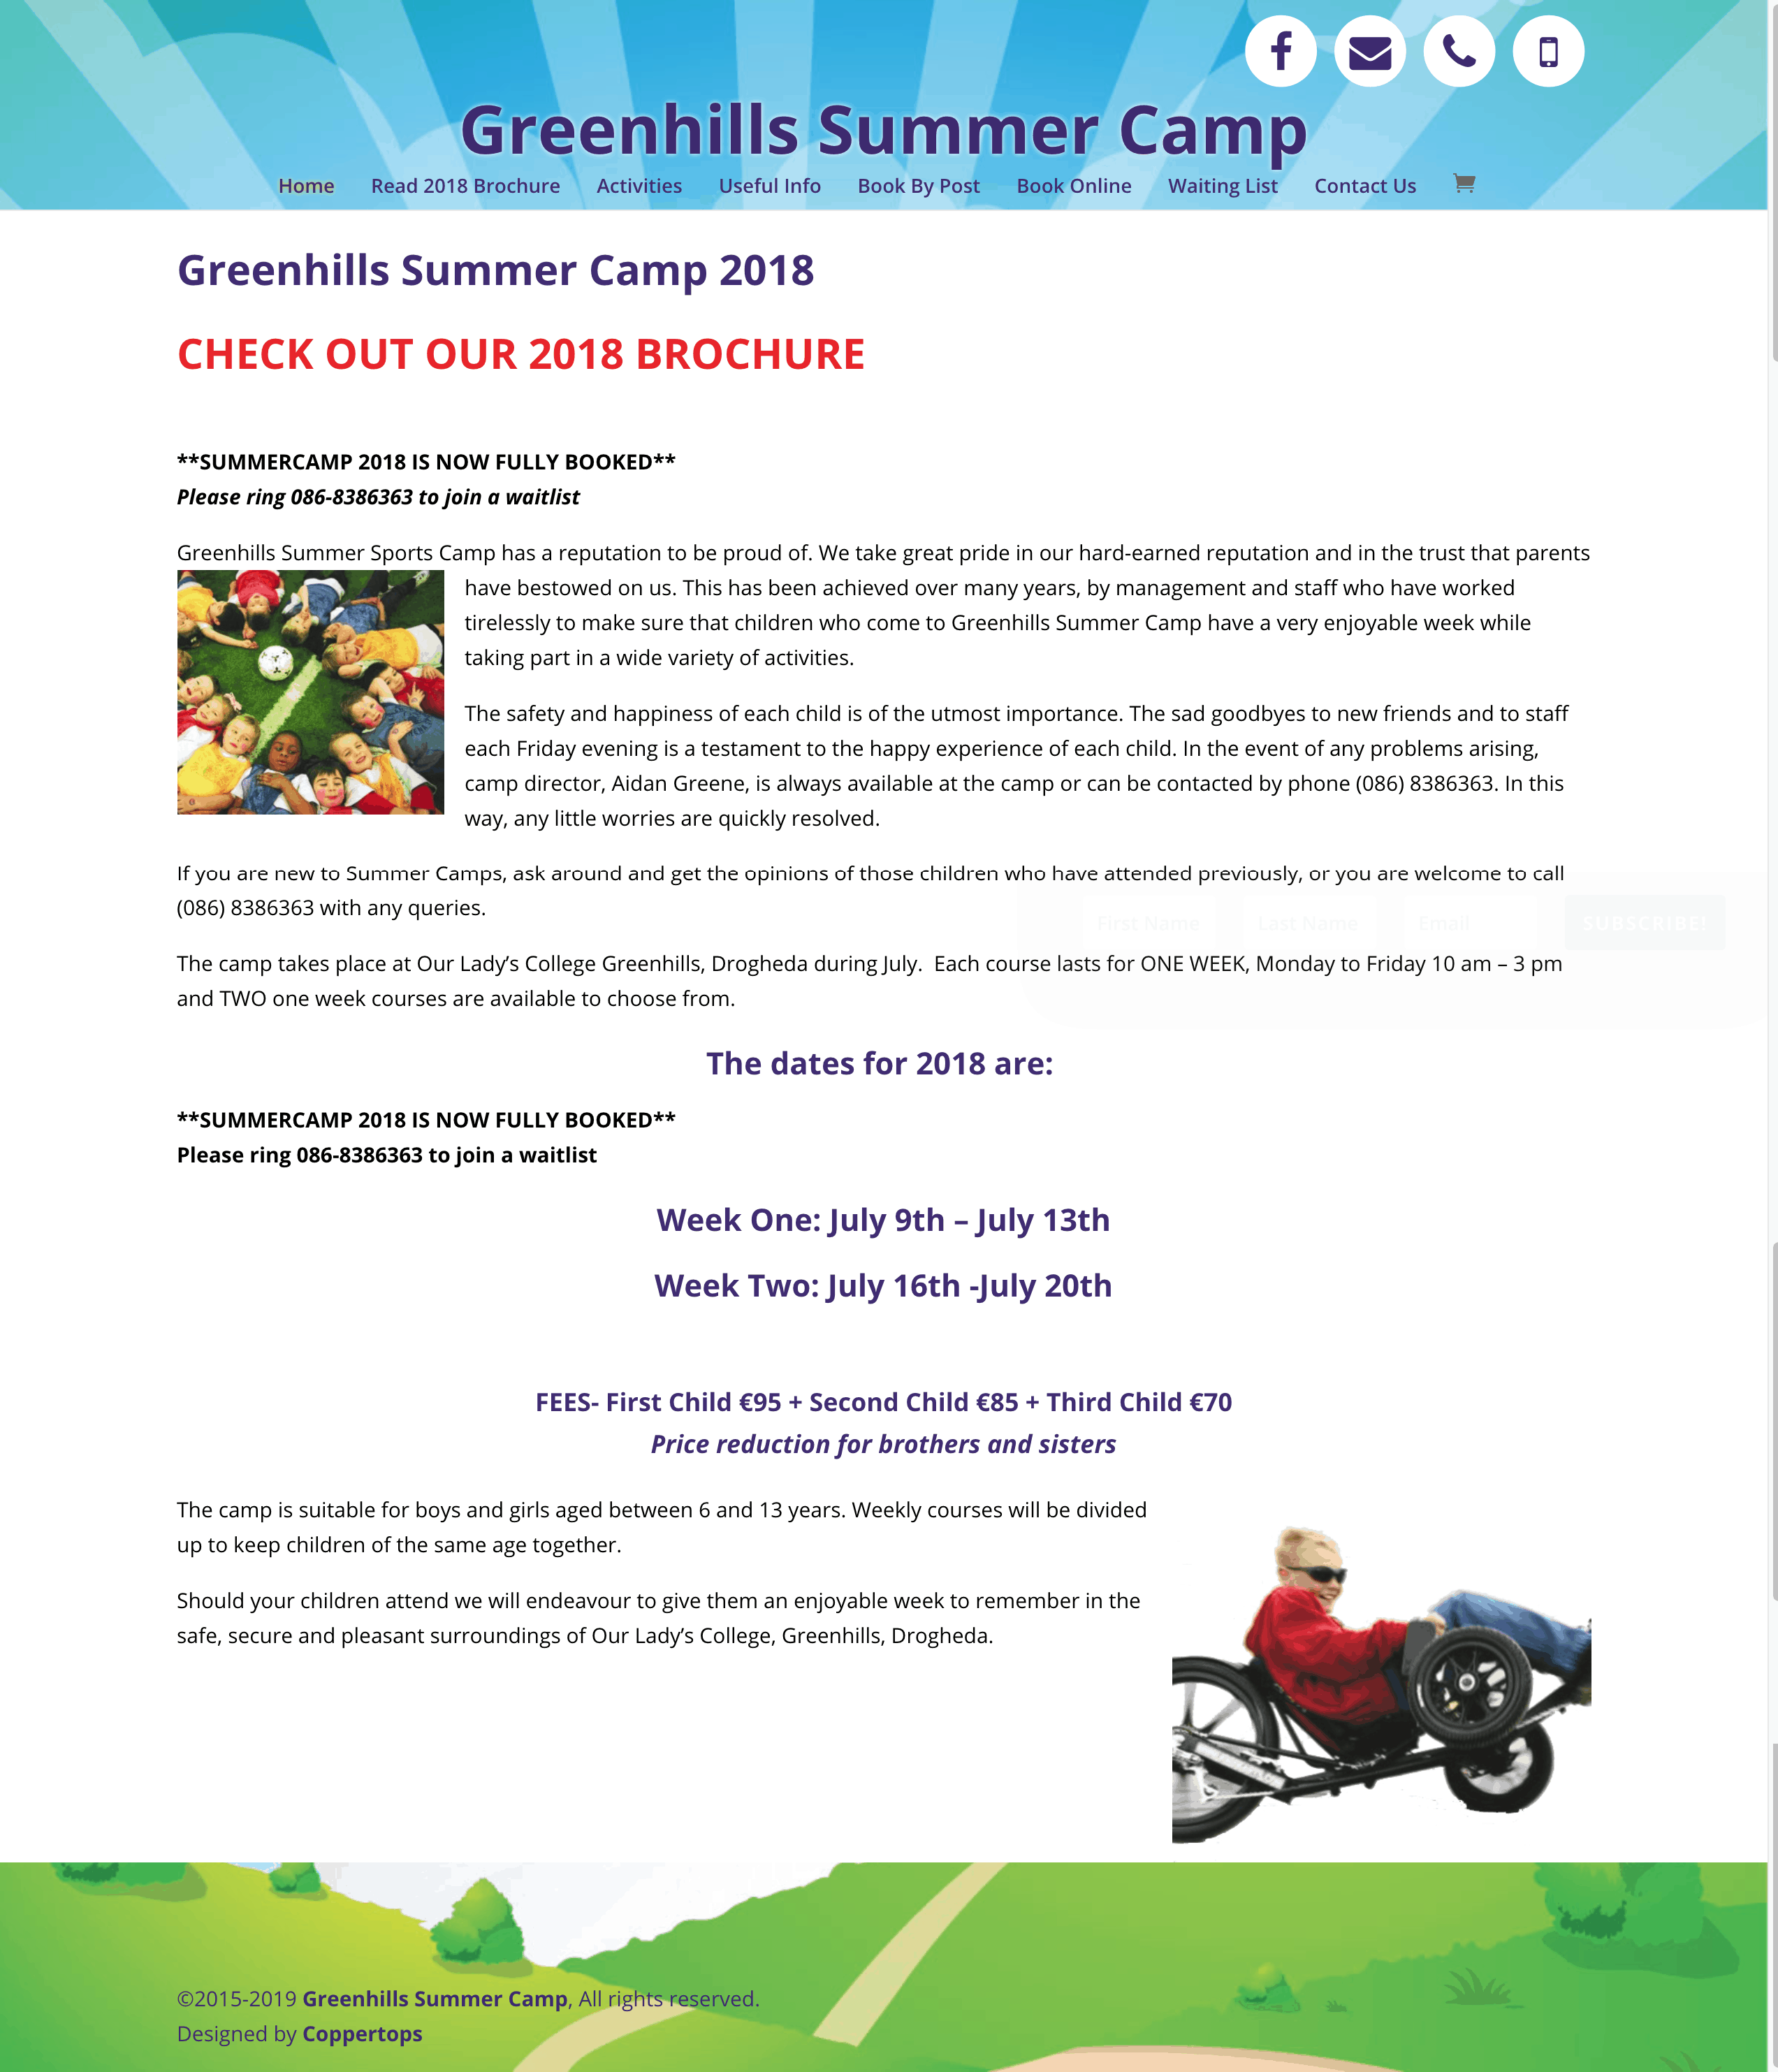 Greenhills Summer Camp Web Design